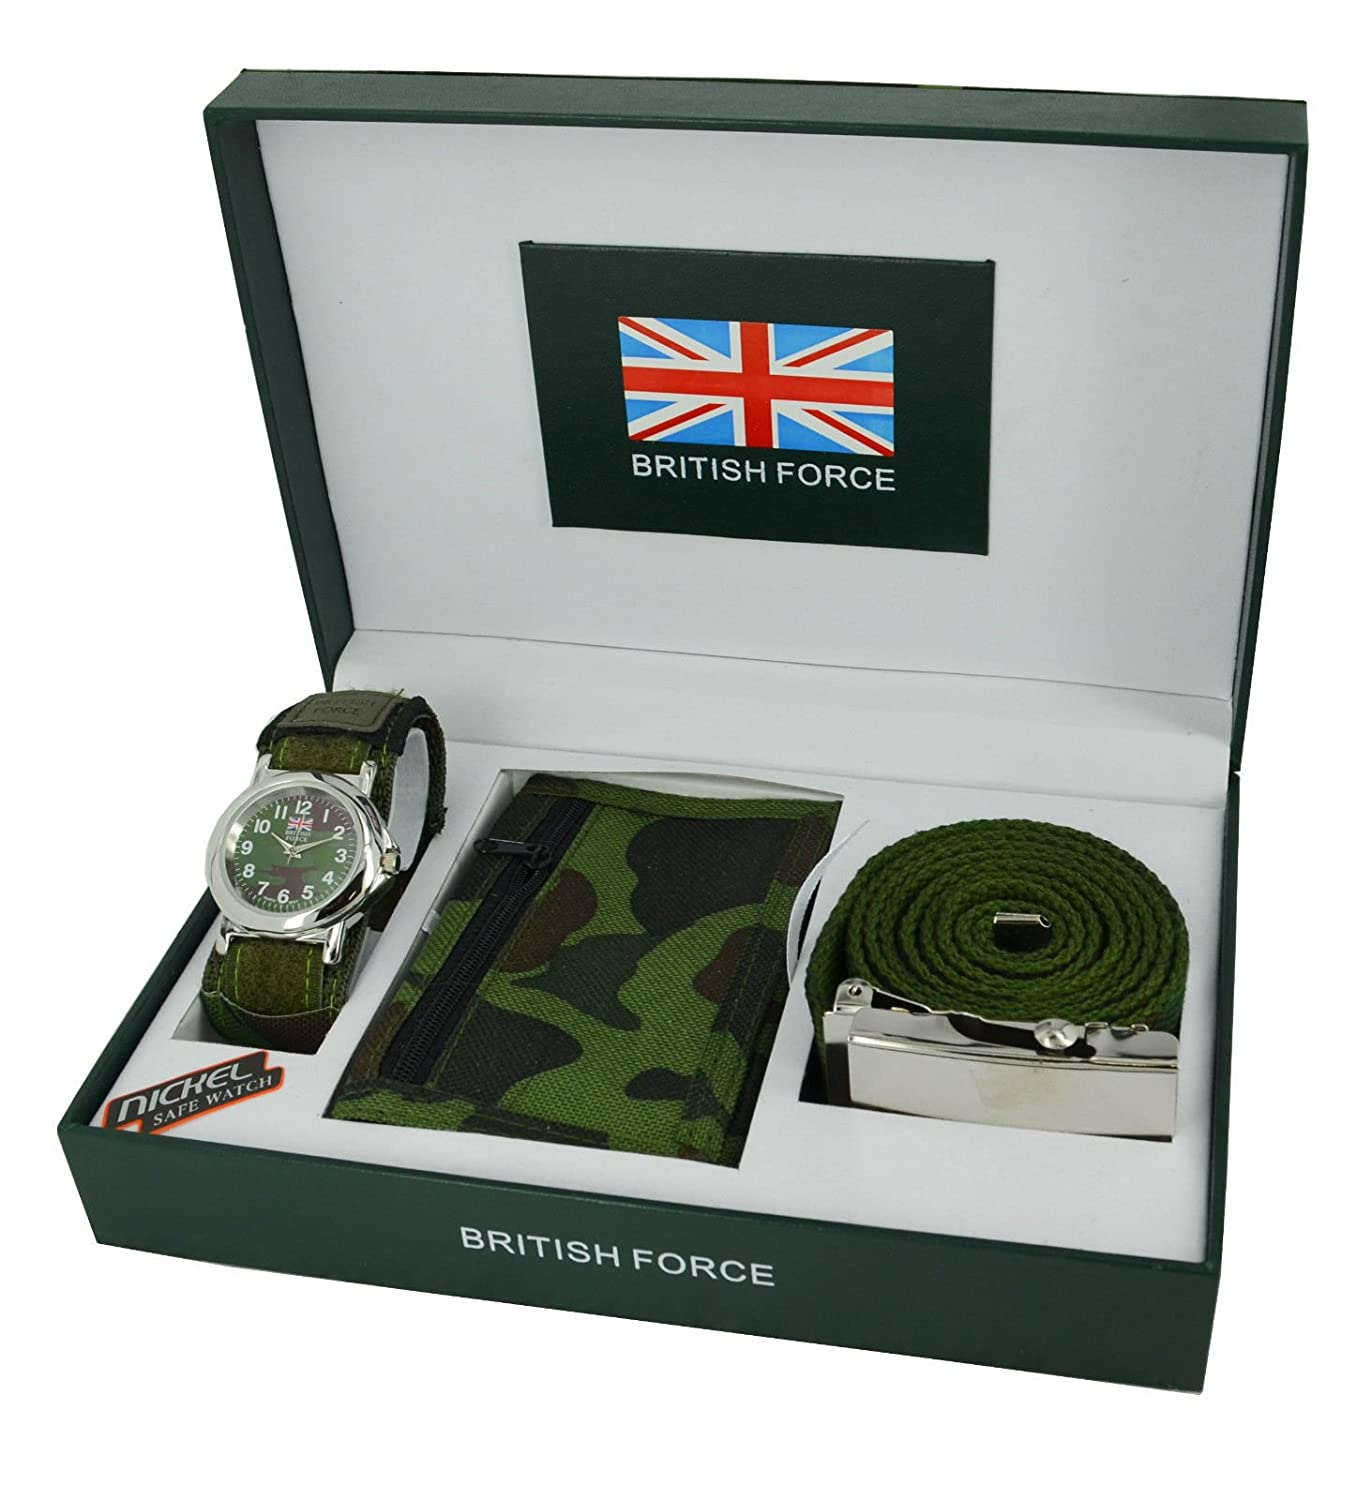 ARMY WATCH Gift Set for Men & Boys With Belt Wallet: Amazon.co.uk ...